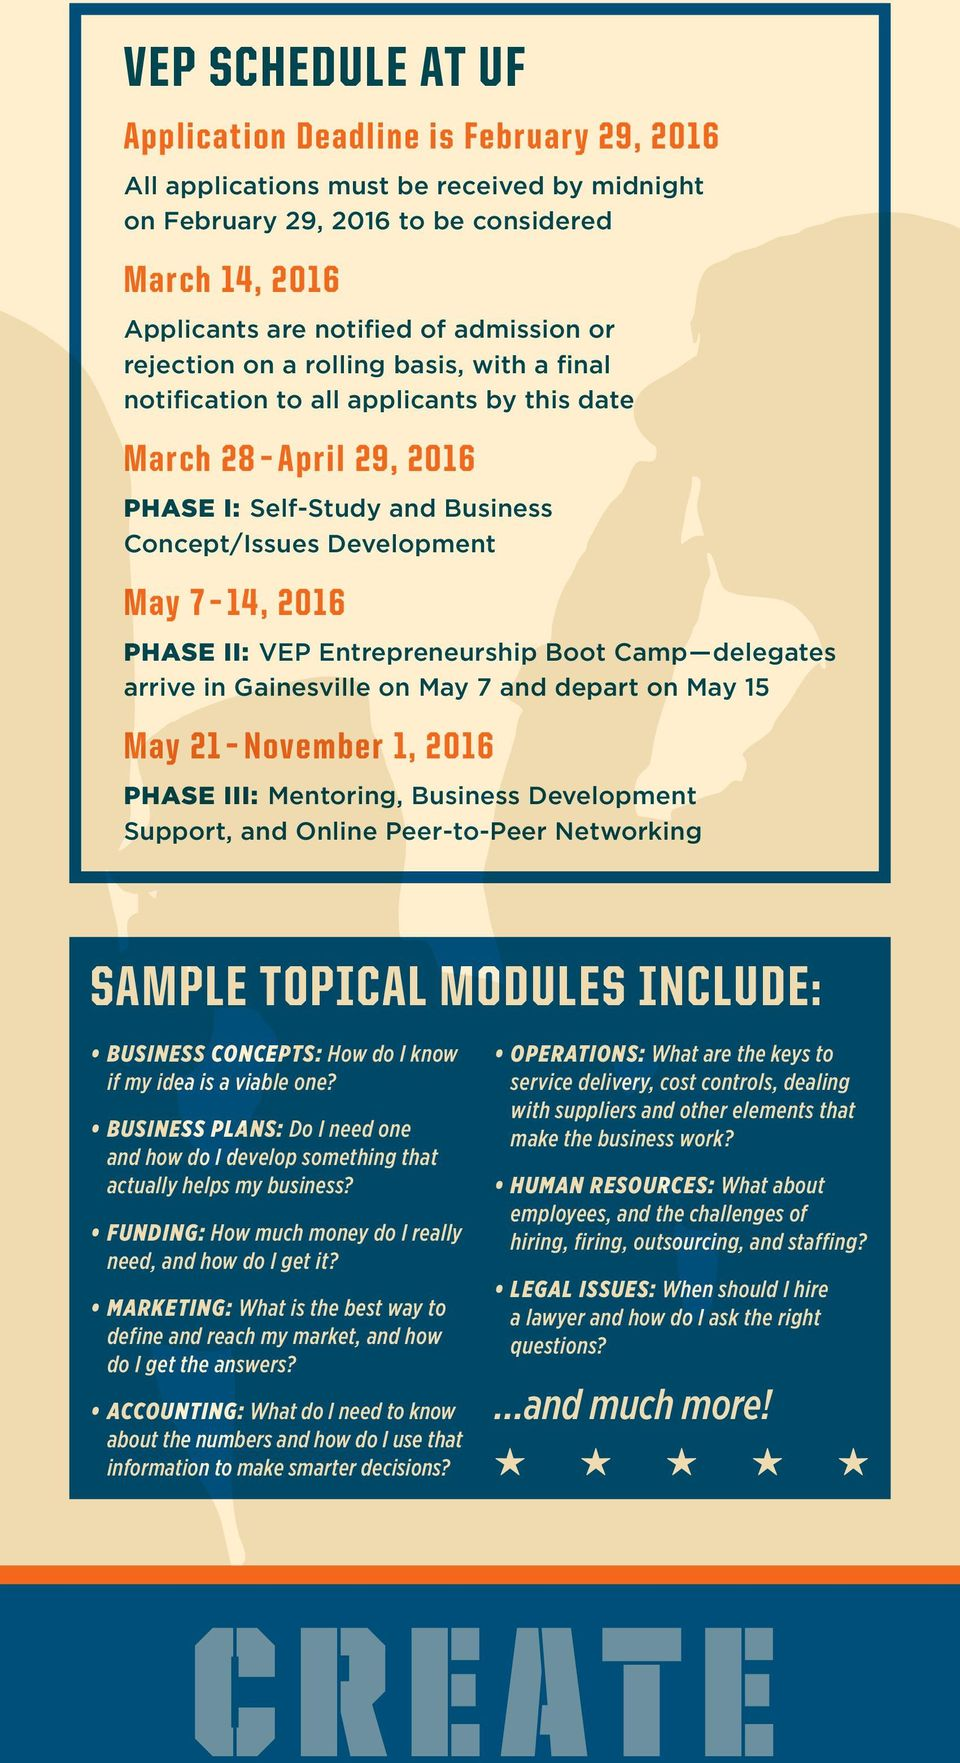 Entrepreneurship Boot Camp delegates arrive in Gainesville on May 7 and depart on May 15 May 21 November 1, 2016 PHASE III: Mentoring, Business Development Support, and Online Peer-to-Peer Networking